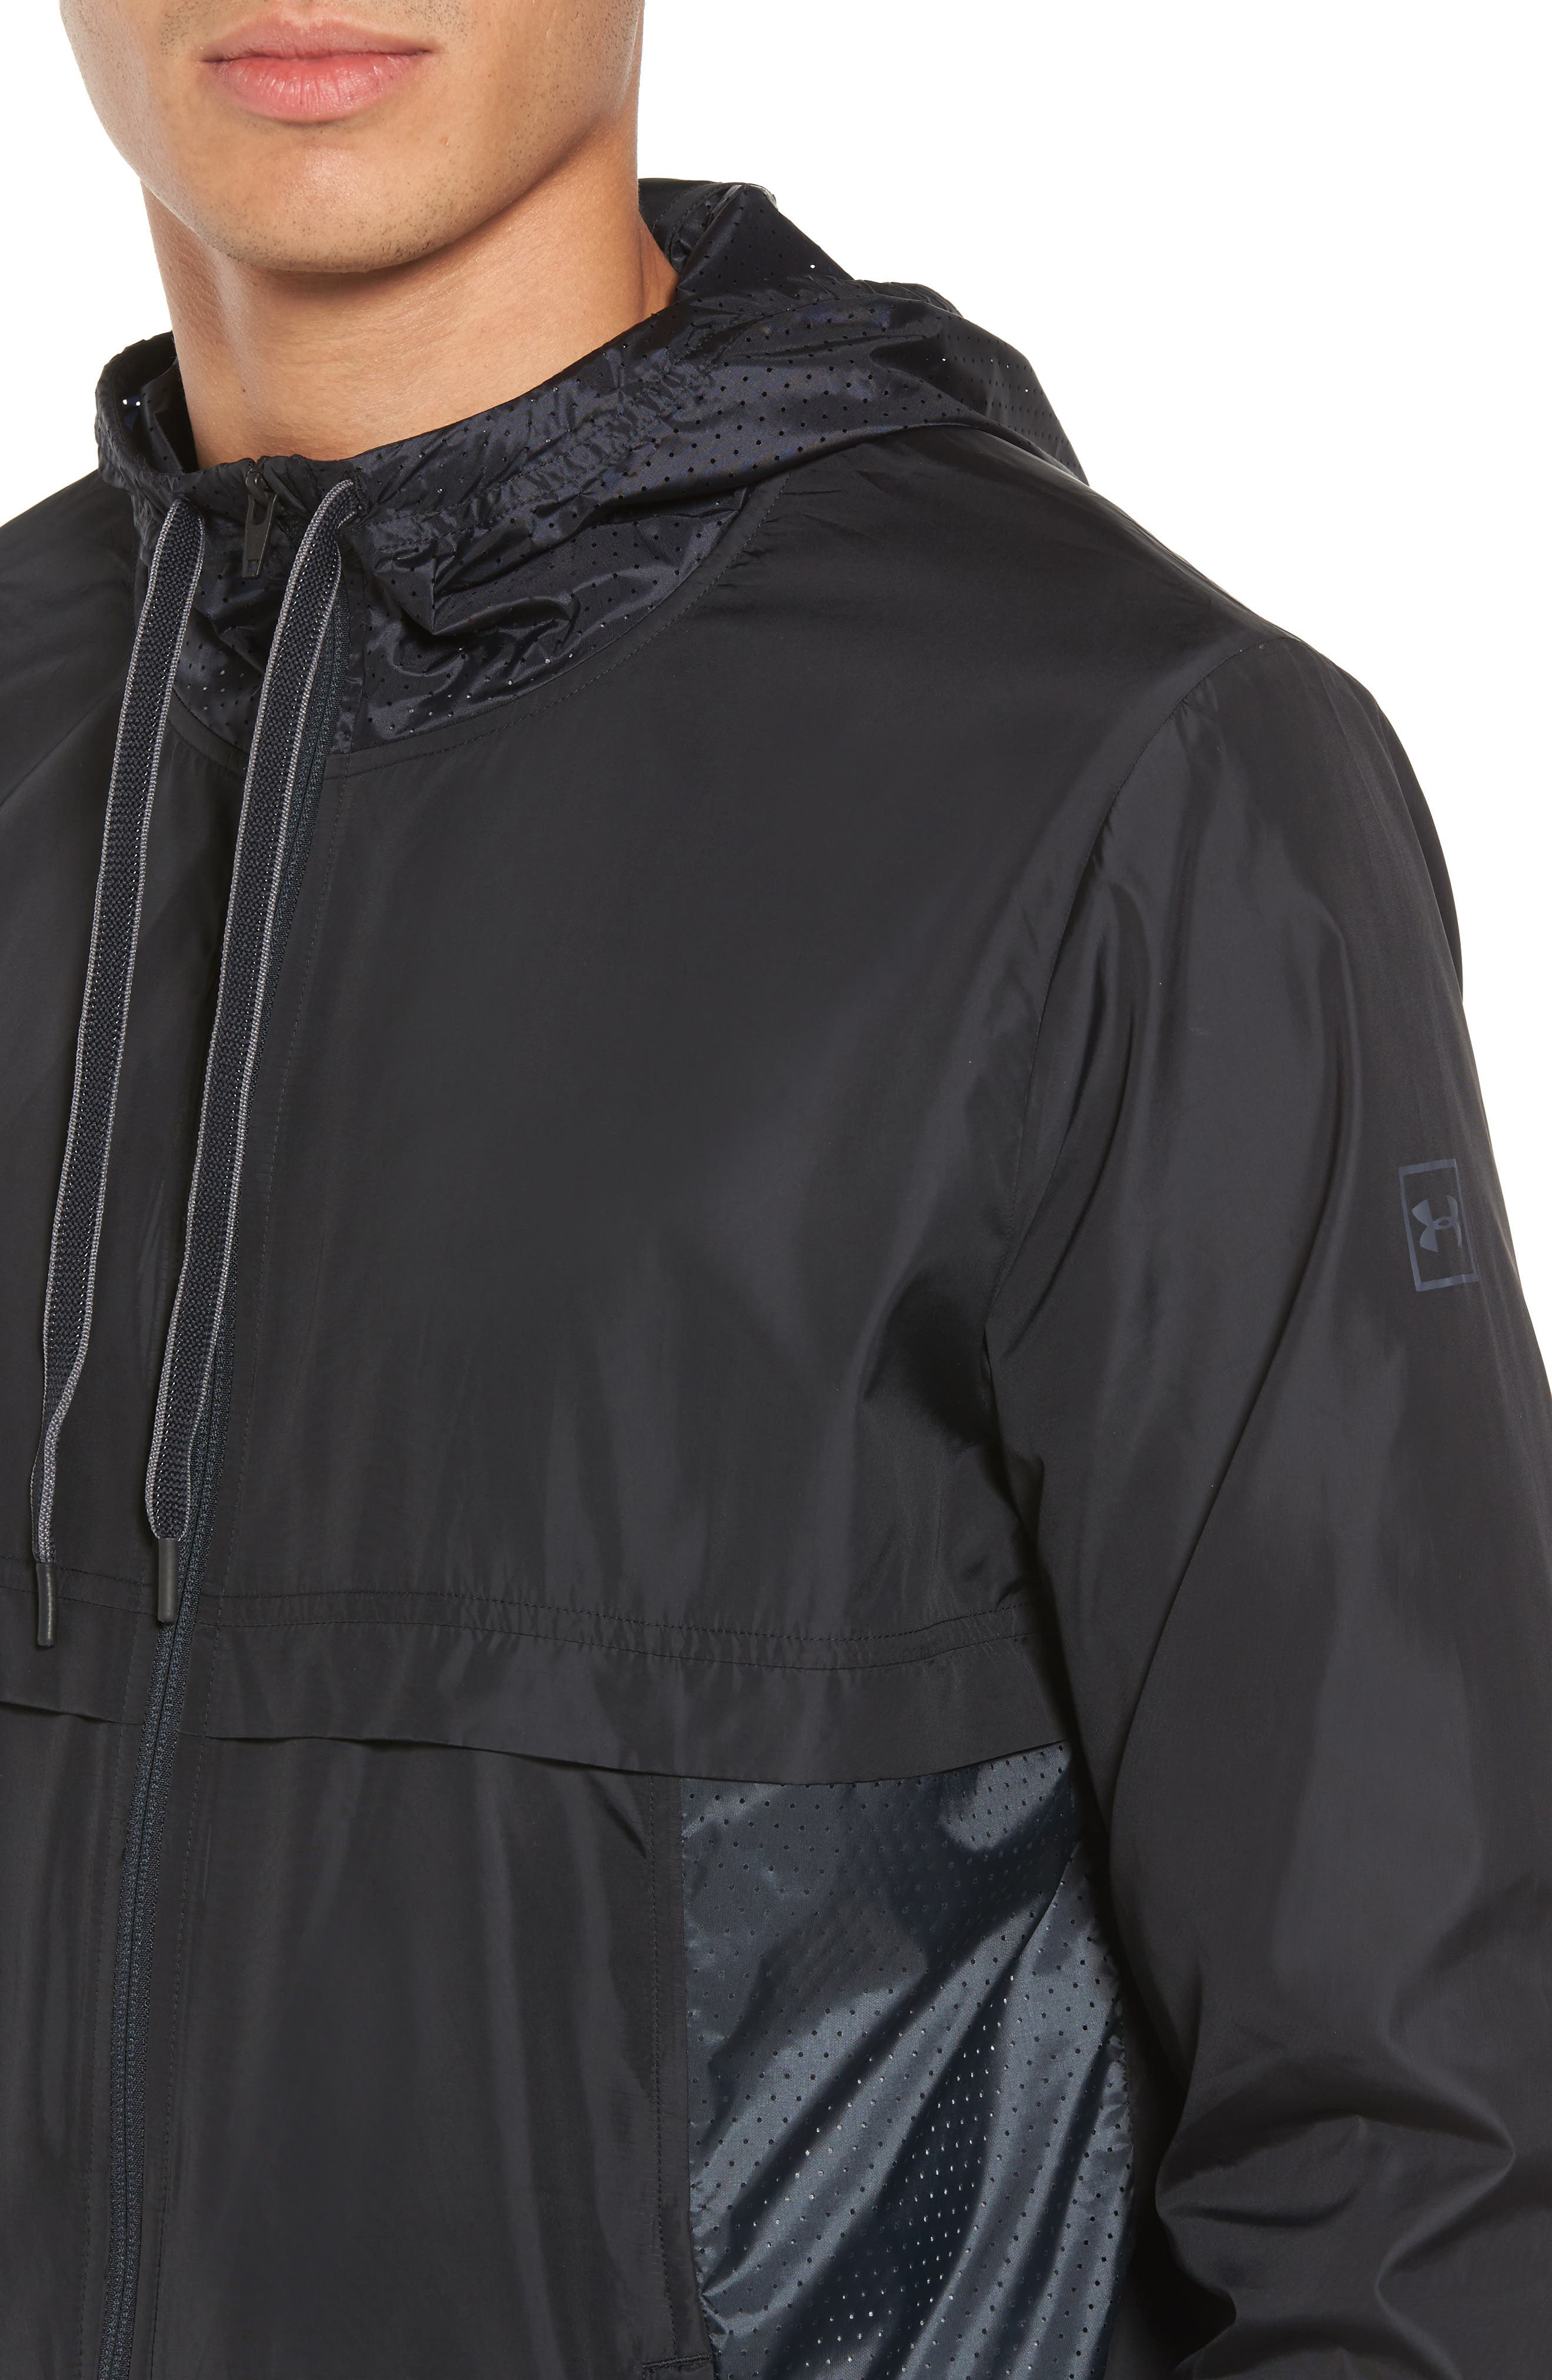 Sportstyle Windbreaker,                             Alternate thumbnail 6, color,                             Black / Overcast Grey